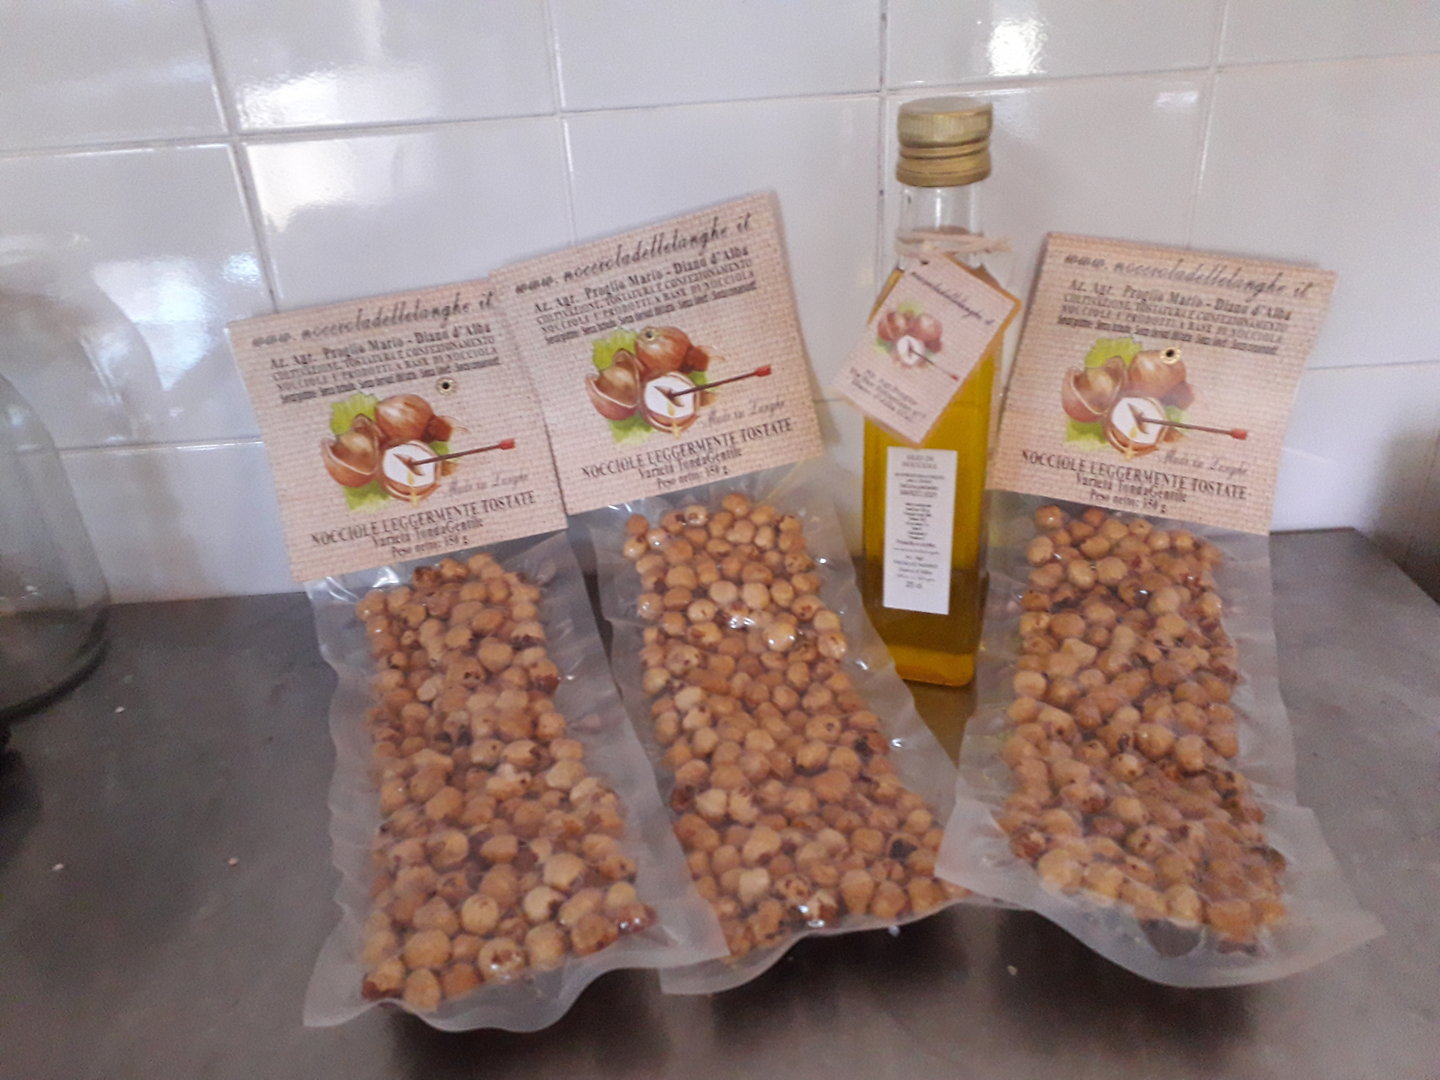 OFFERTA NOCCIOLE TOSTATE E OLIO DI NOCCIOLE - OFFER TOASTED HAZELNUTS AND HAZELNUT OIL